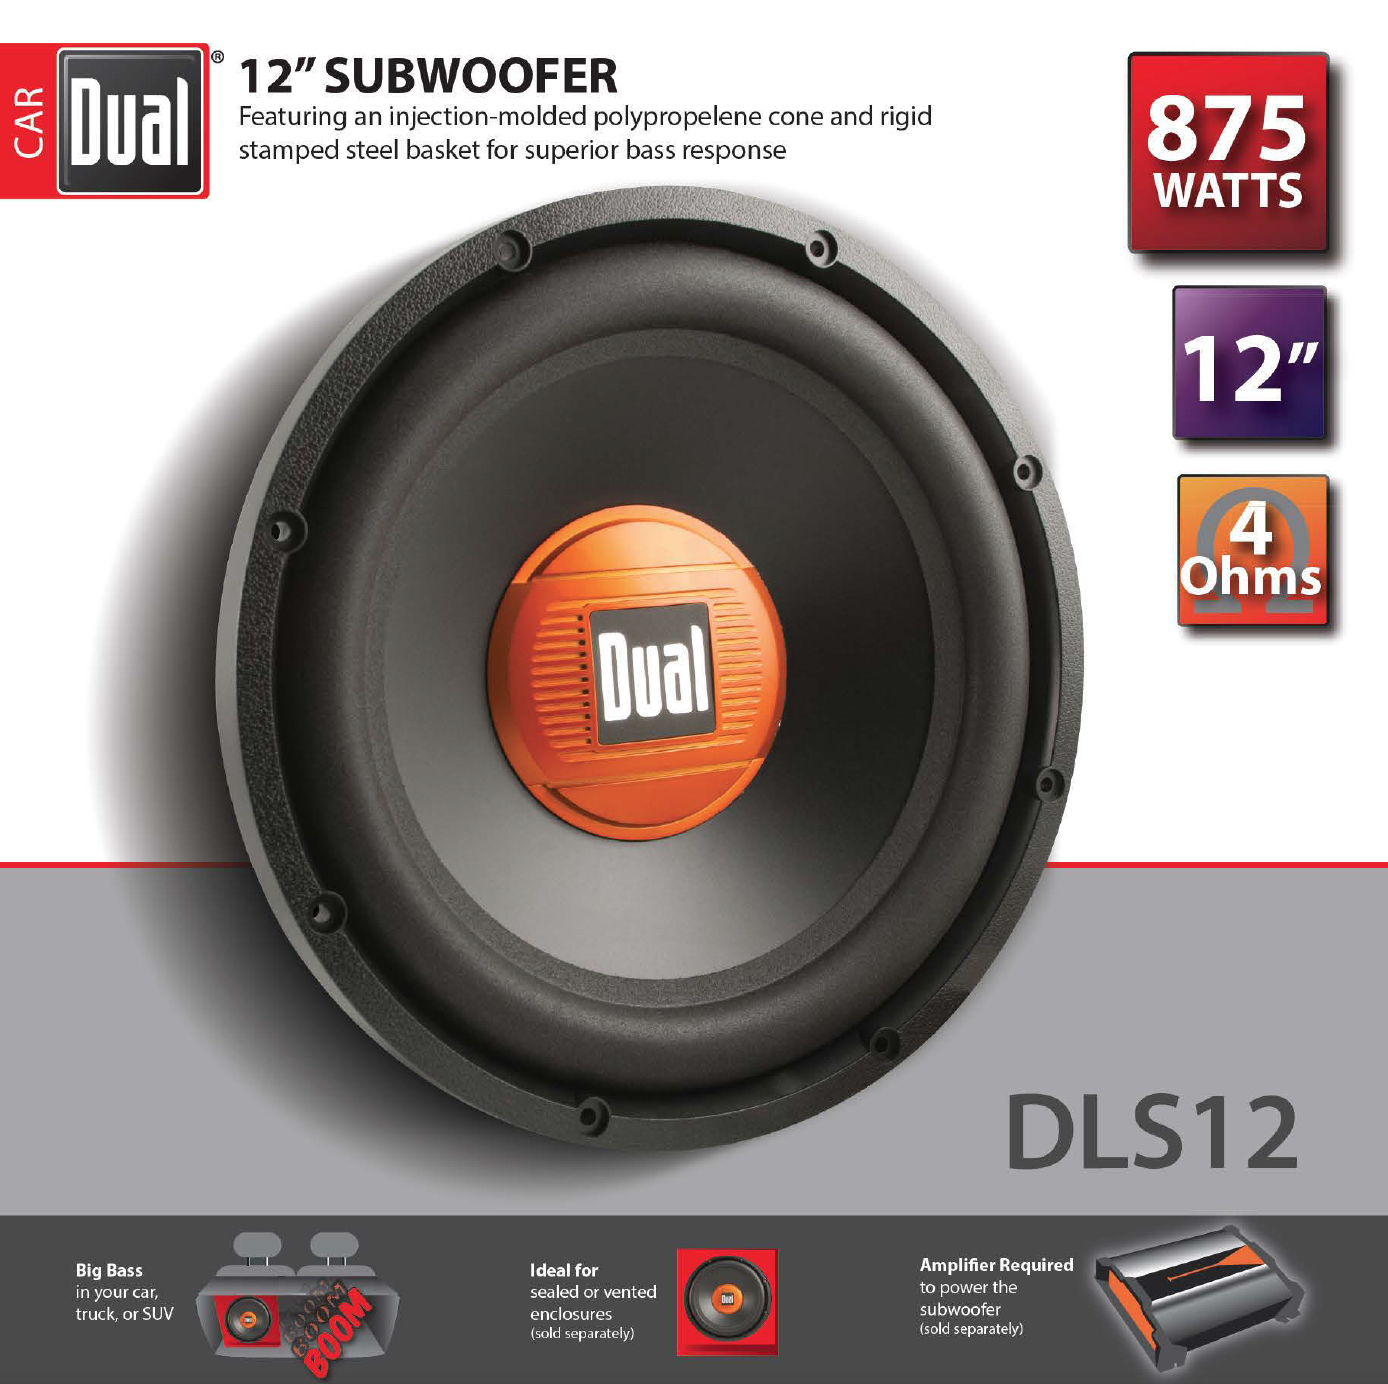 Dual Electronics DLS12 12-inch High Performance Subwoofer with a 2-inch Single Voice Coil and 875 Watts of Peak Power